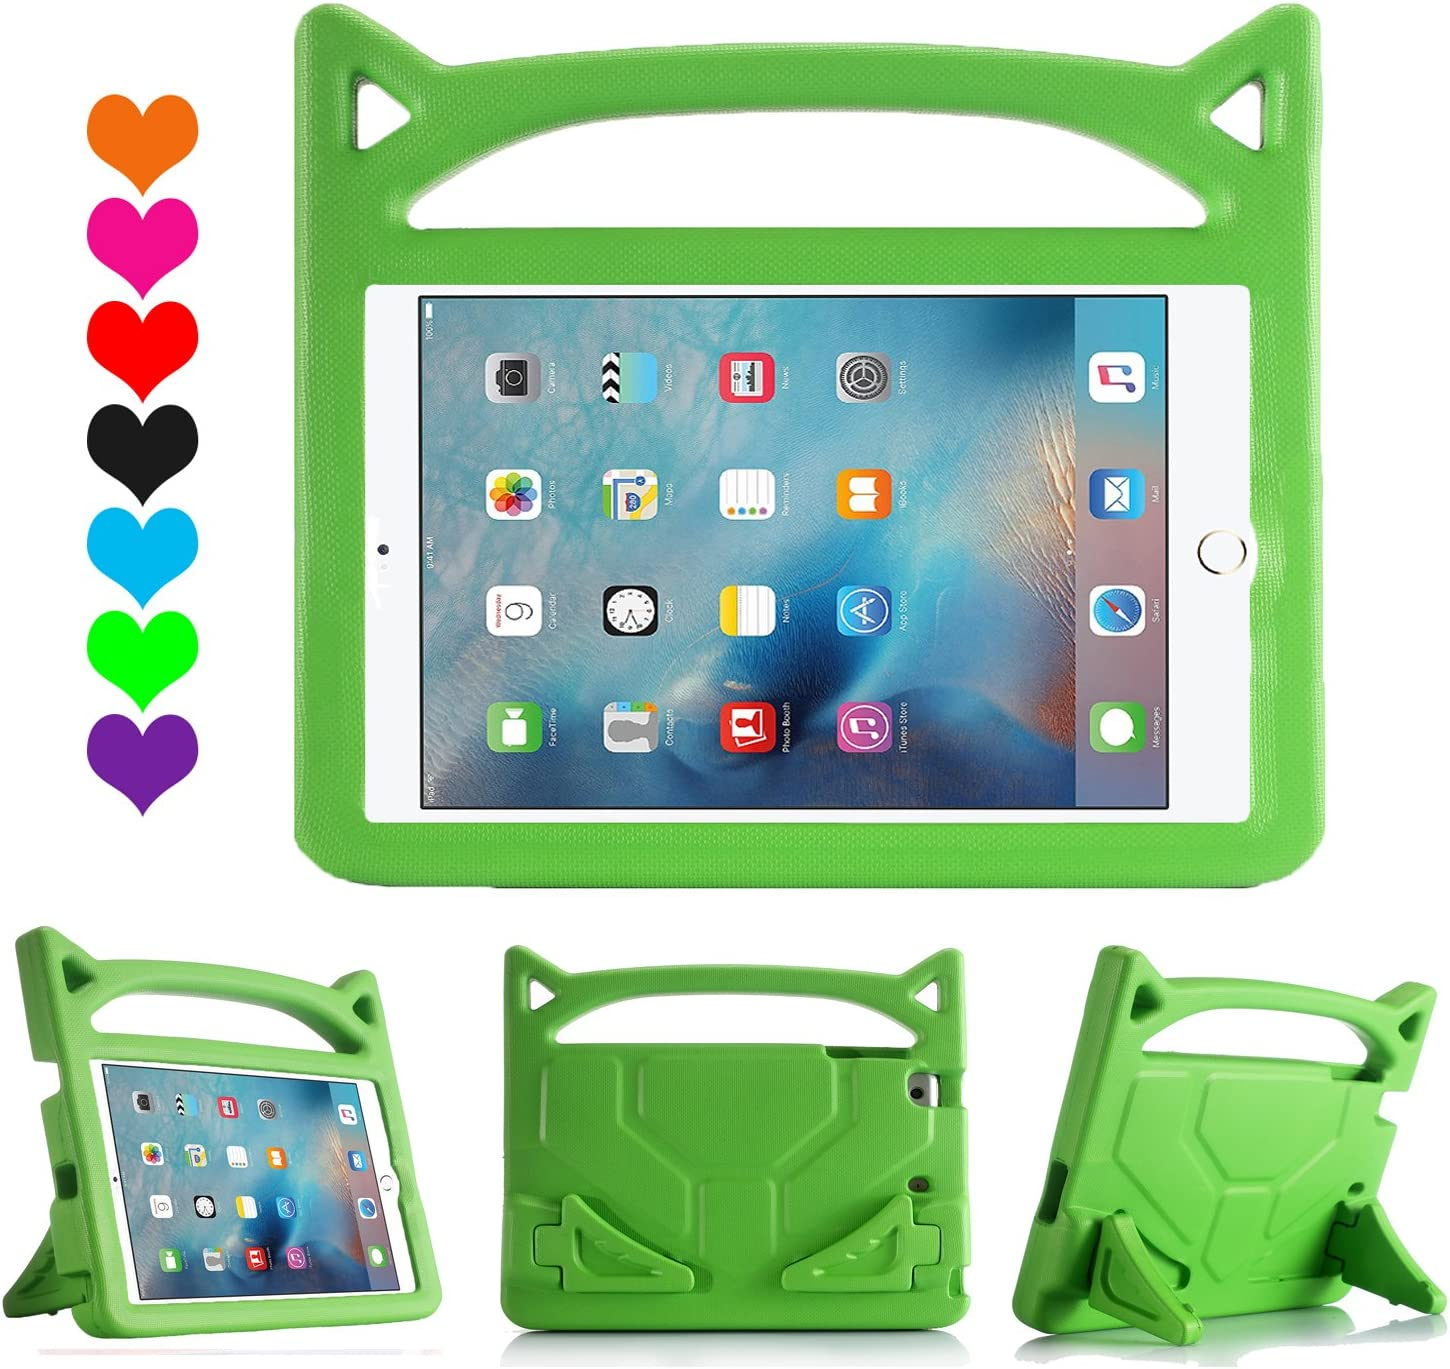 iPad 9.7 Case 2018/2017, iPad Pro 9.7 Case, iPad Air 2 Case, Huaup Kids Shock Proof Handle Light Weight Super Protective Stand Cover Case for Apple iPad 5 6 th/Air 2 / Pro 9.7 Tablet (Green)